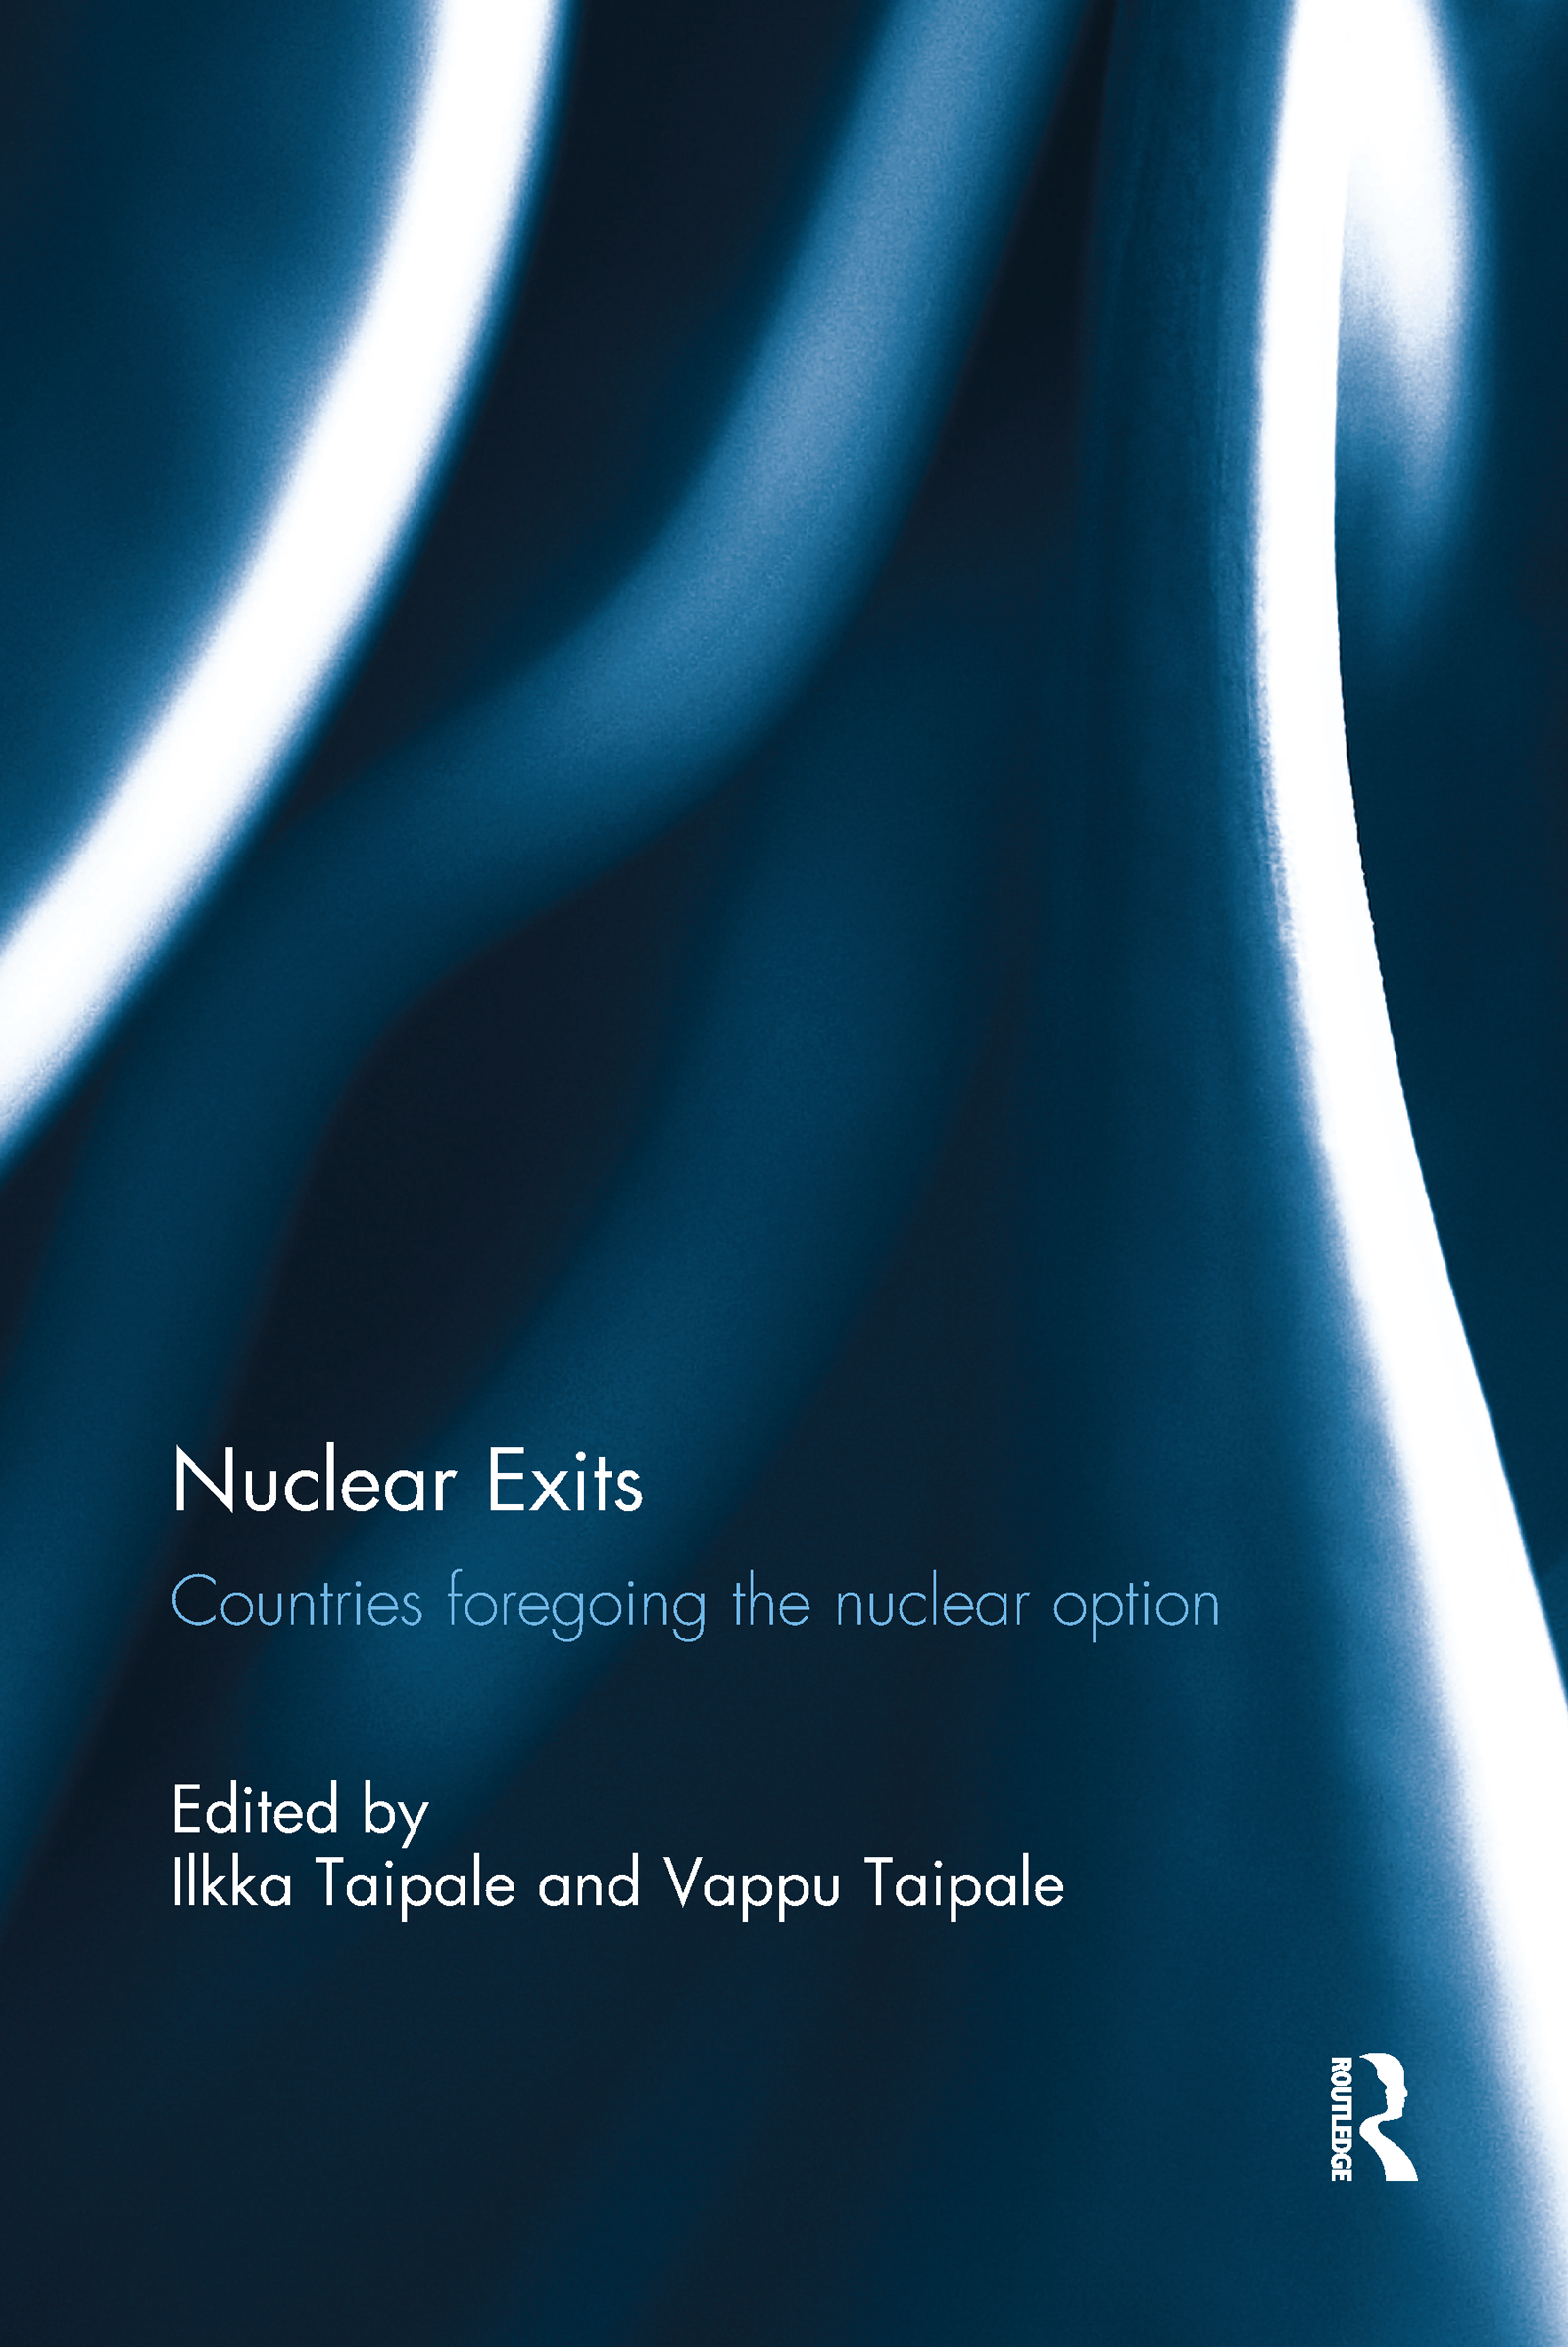 Nuclear Exits